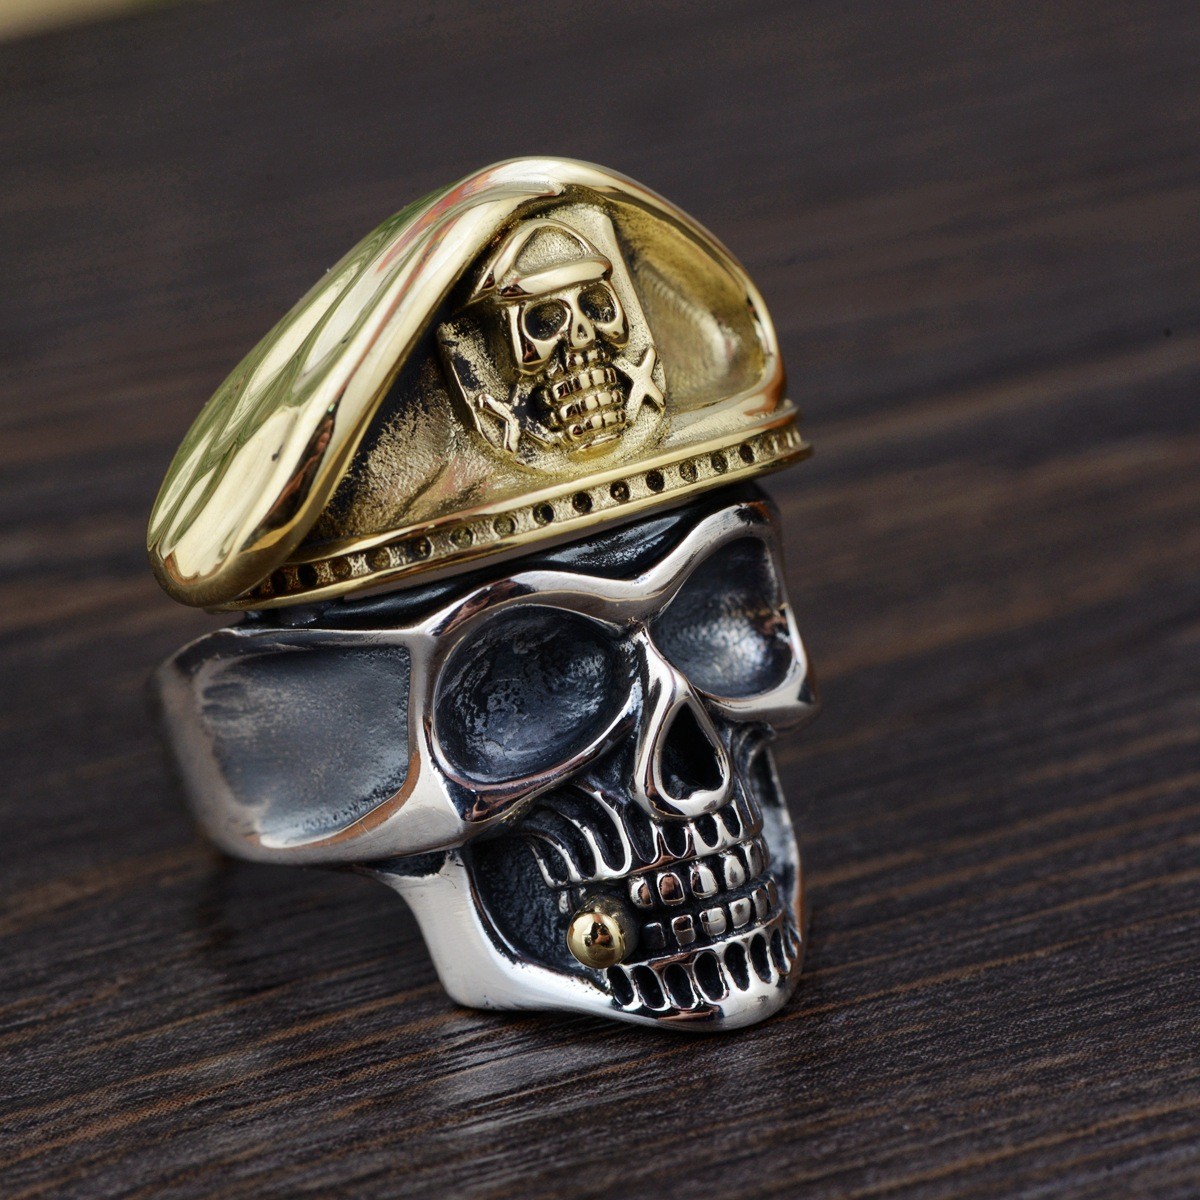 Authentic 925 Sterling Silver Skull Head Mens Rings Biker With Cap Vintage Punk Rock Male Jewelry Gothic Skeleton